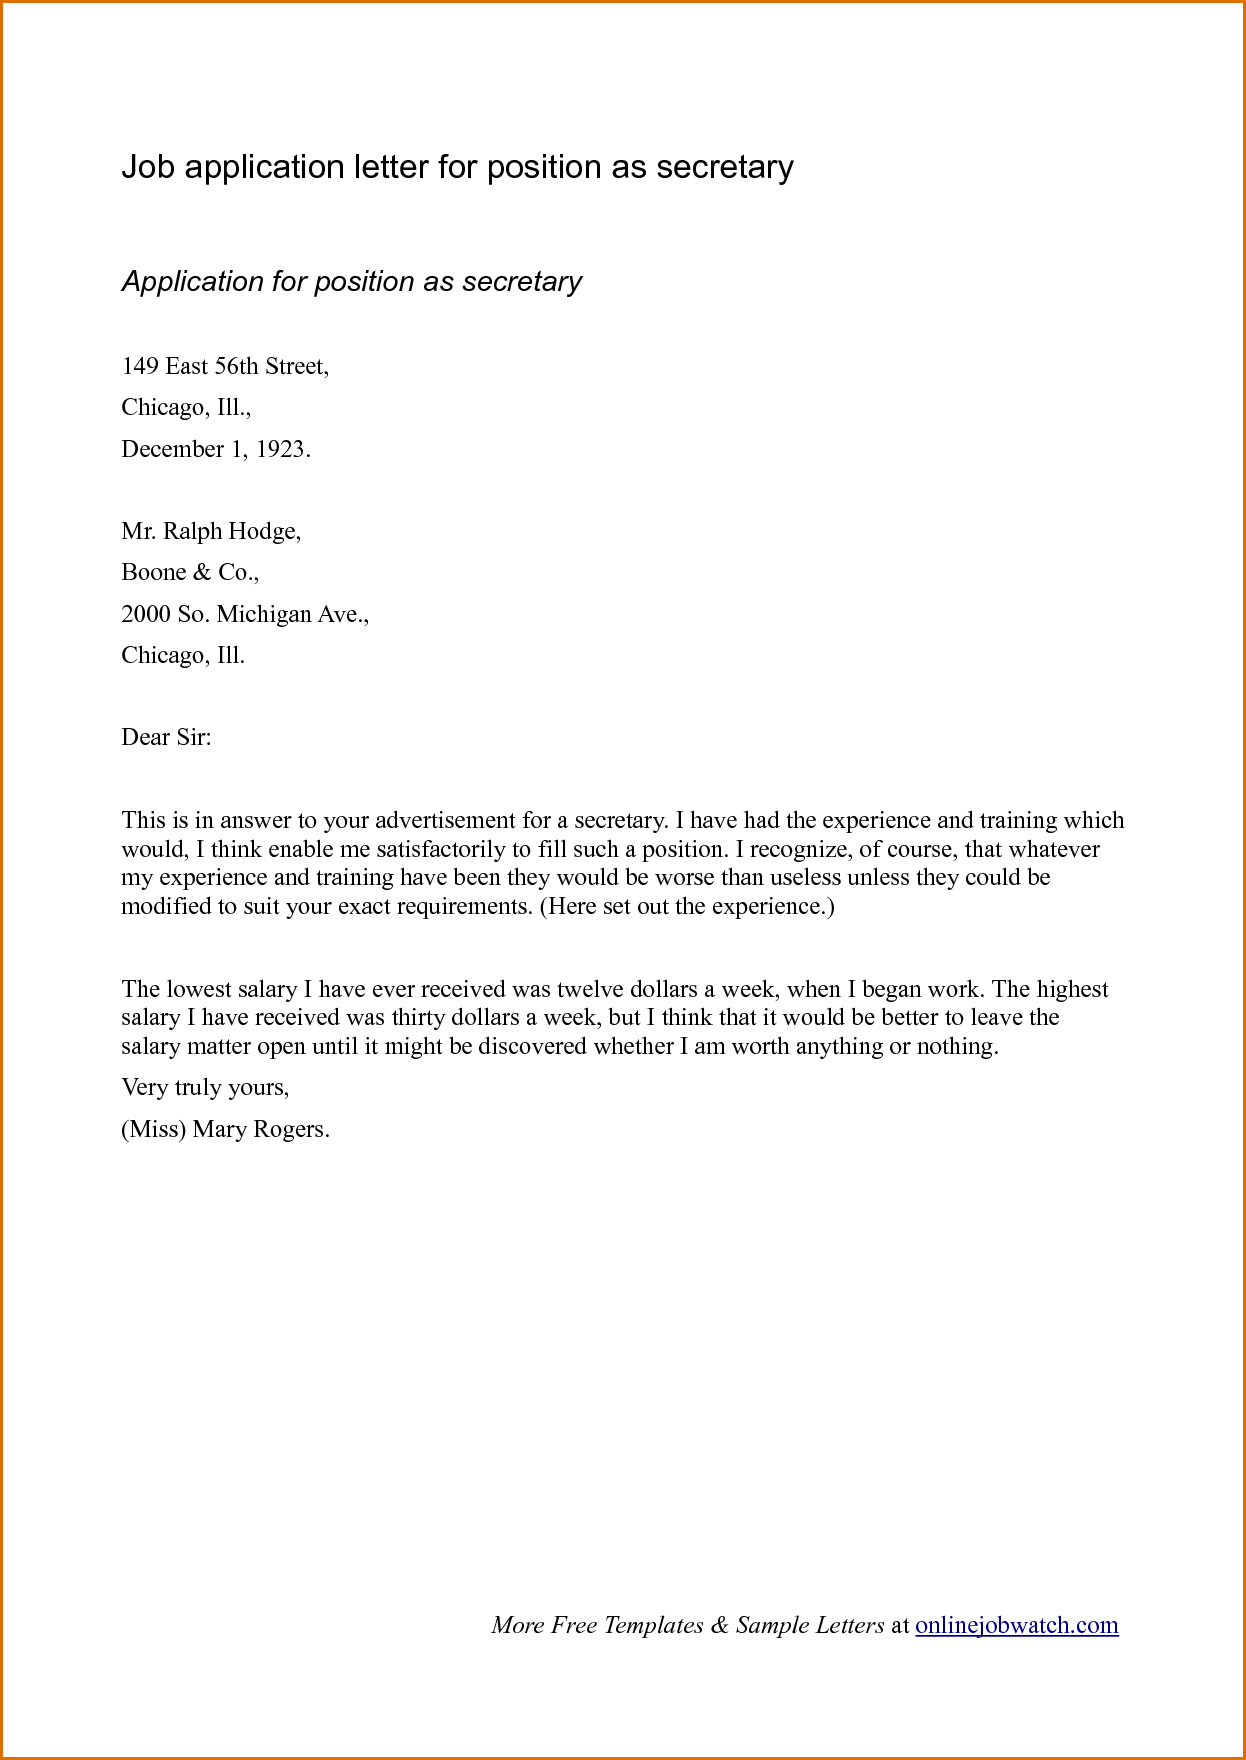 job application letter sample cover letter format for application 22632 | sample cover letter format for job application 21